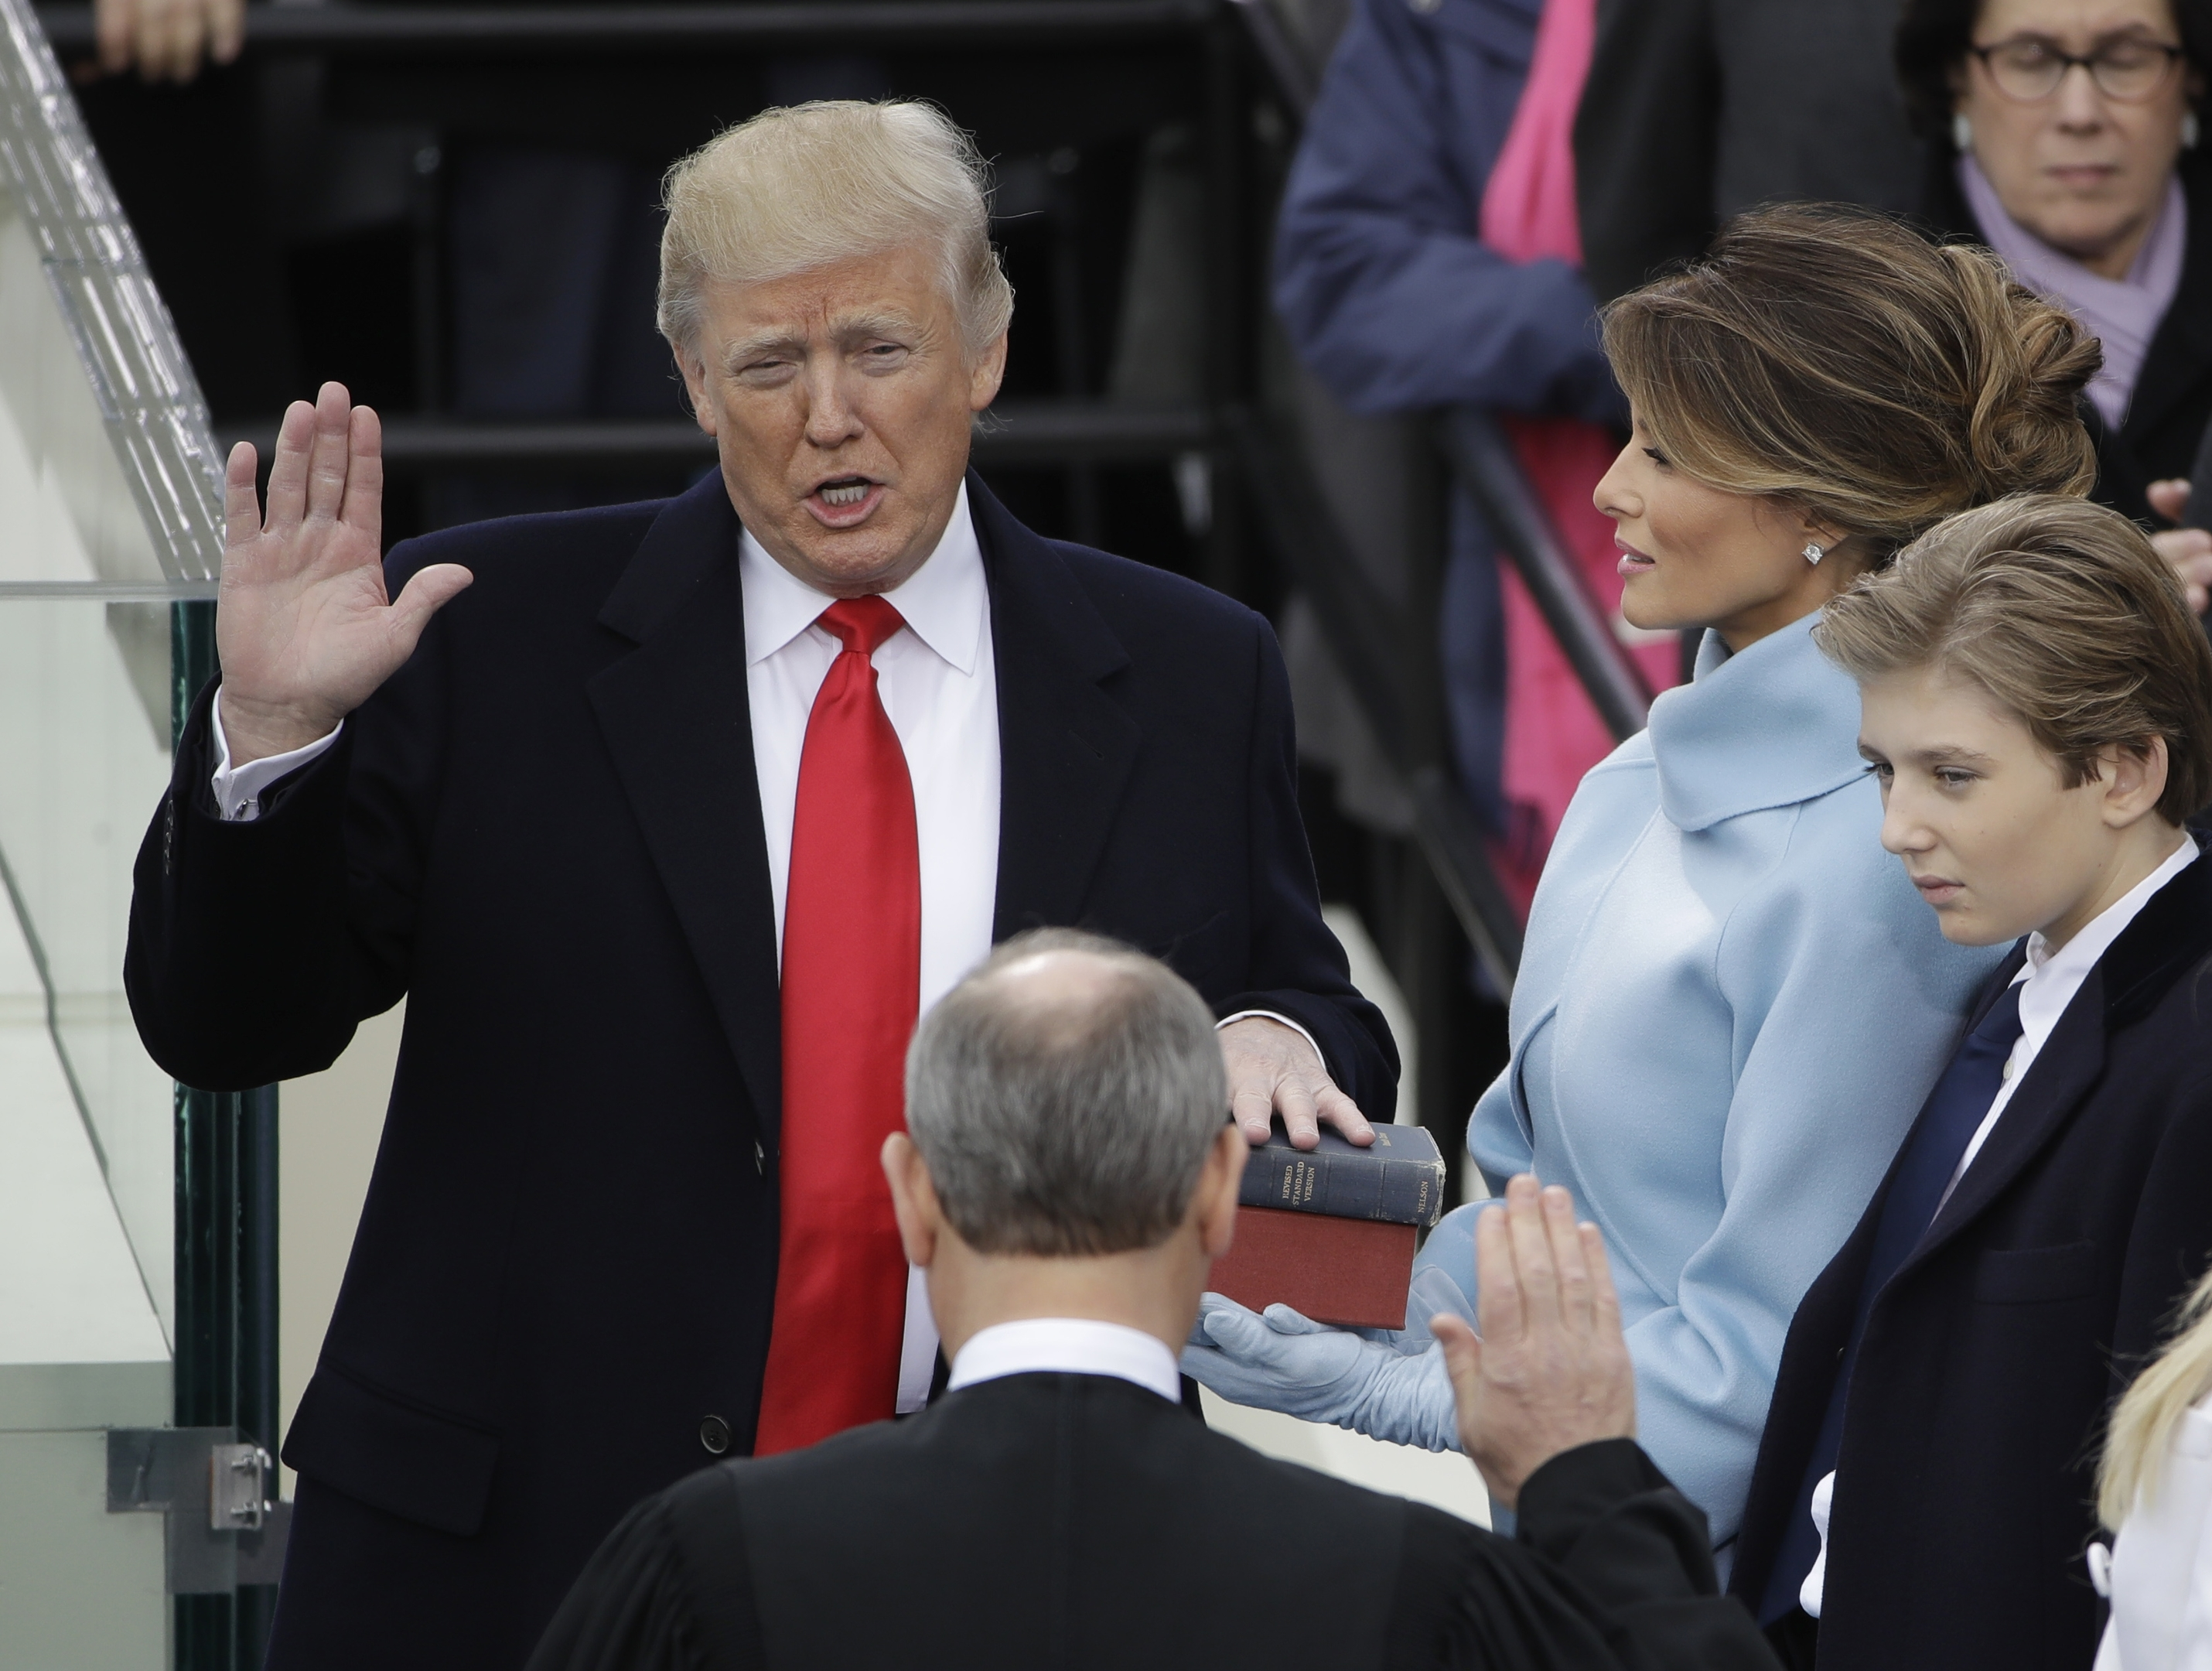 Donald Trump is sworn in as the 45th president of the United States by Chief Justice John Roberts as Melania Trump looks on during the 58th Presidential Inauguration at the U.S.